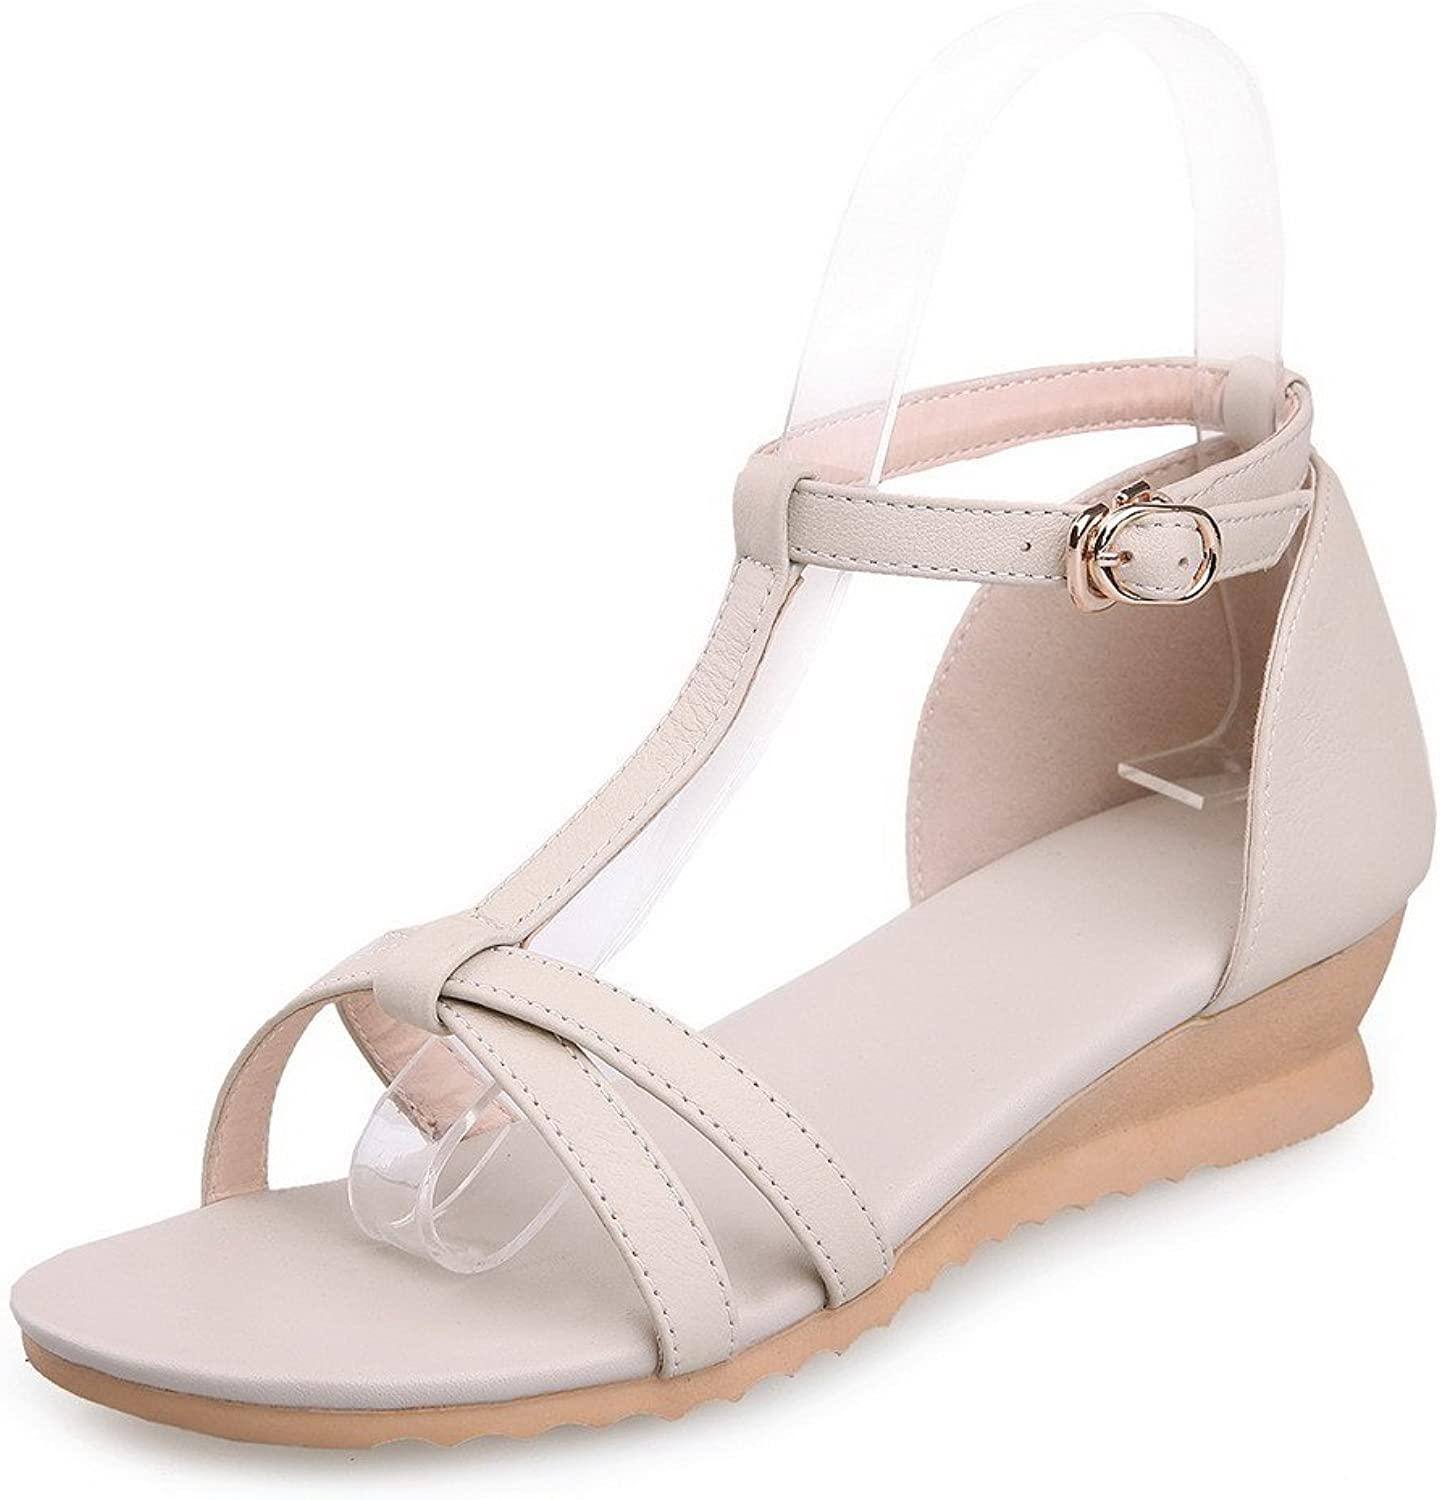 AmoonyFashion Women's Buckle Low-Heels Cowhide Solid Open Toe Wedges-Sandals